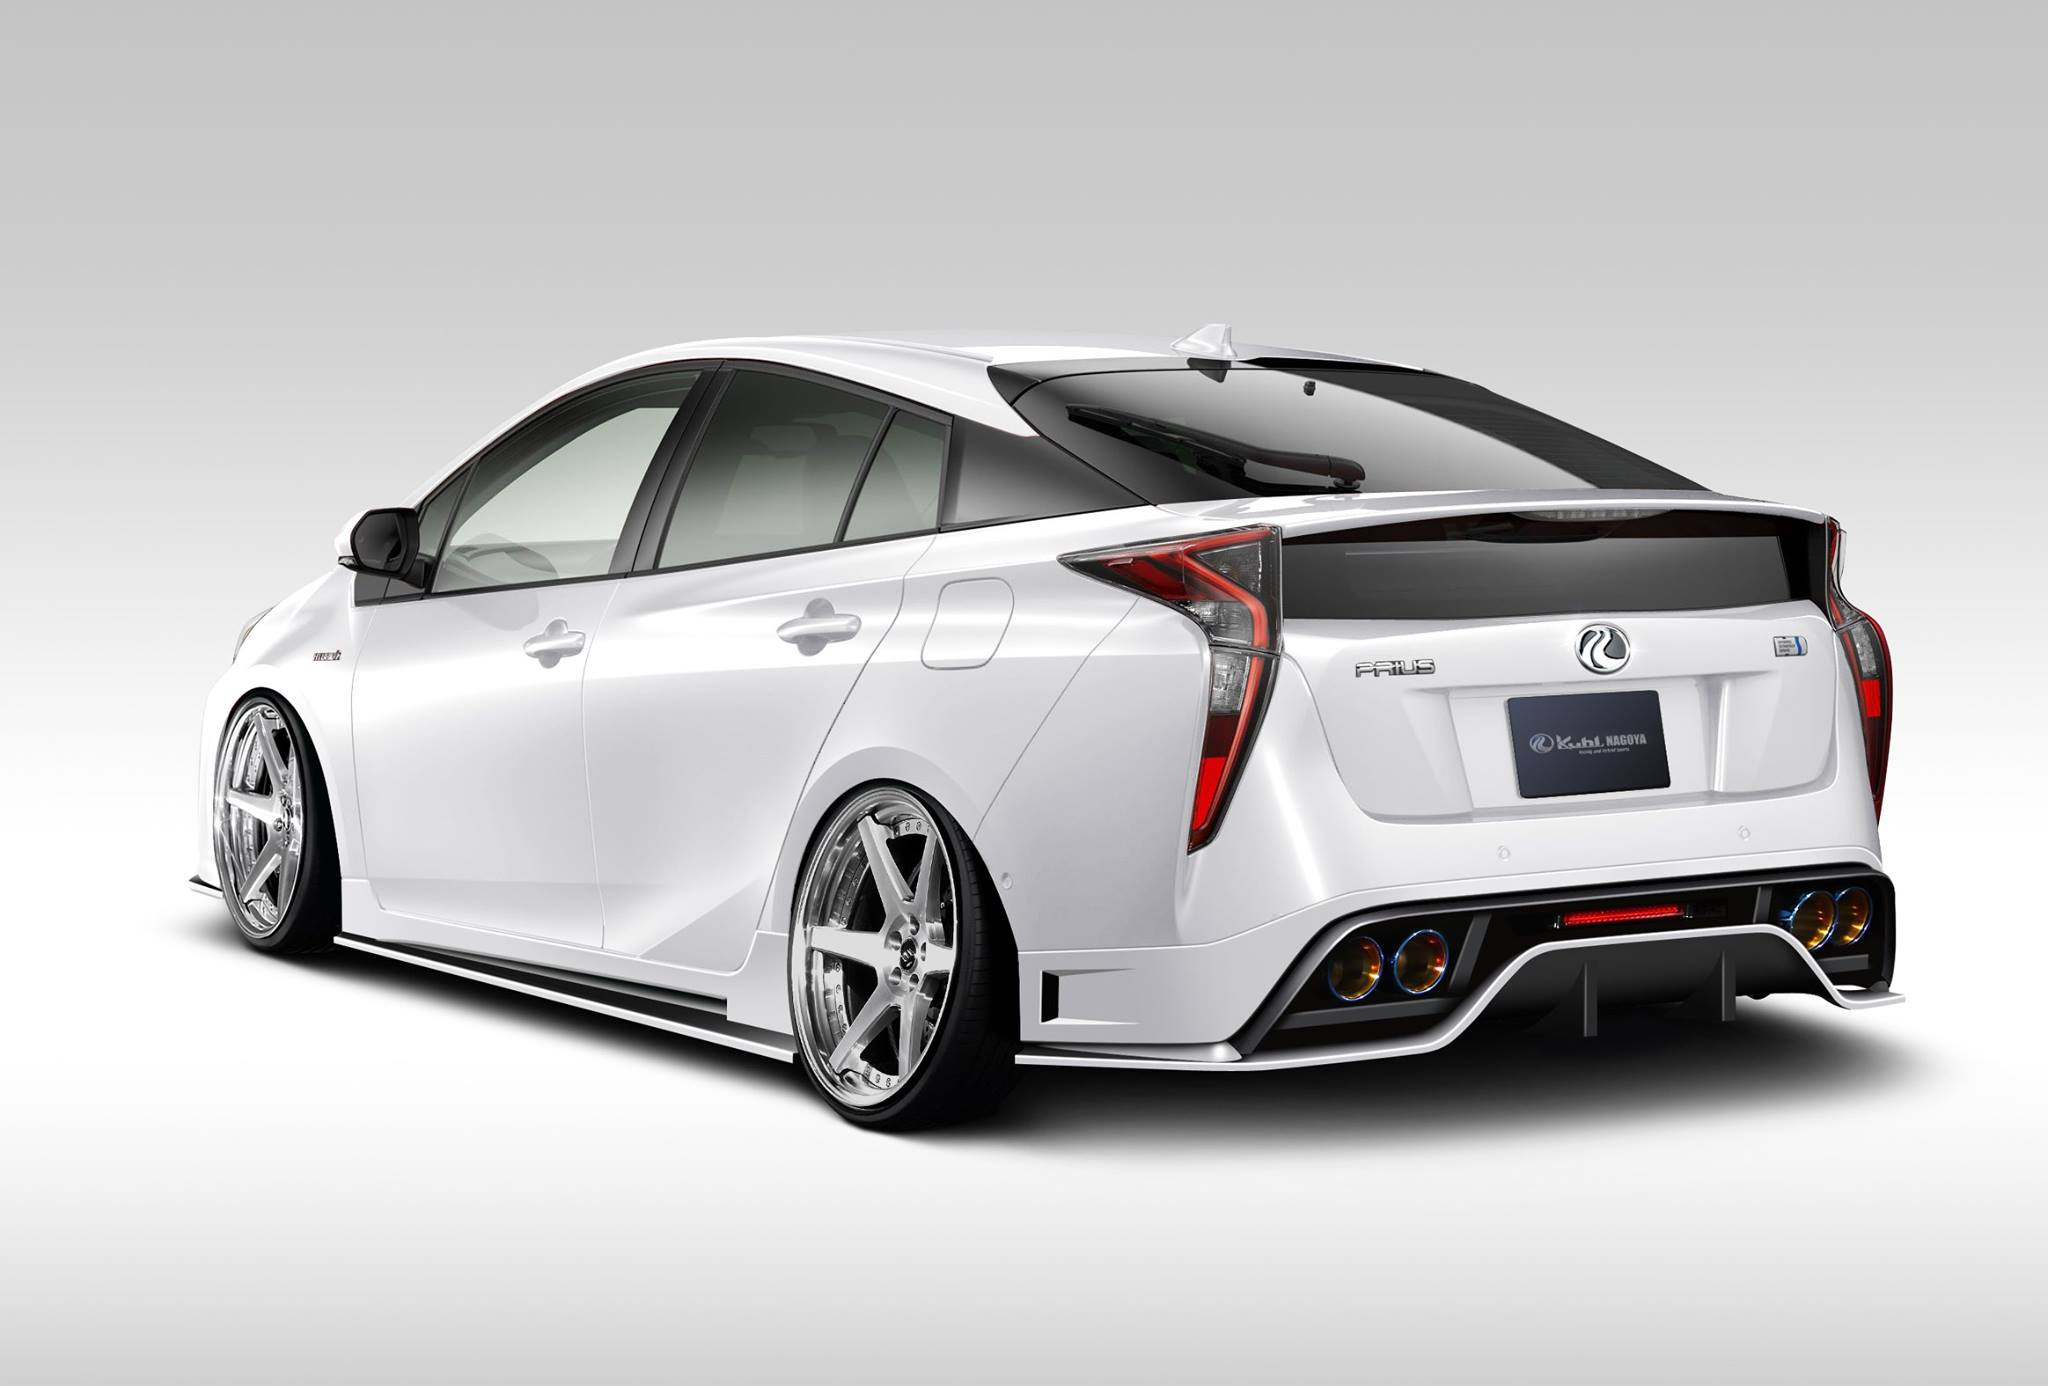 2016 toyota prius getting hellaflush body kit from kuhl. Black Bedroom Furniture Sets. Home Design Ideas